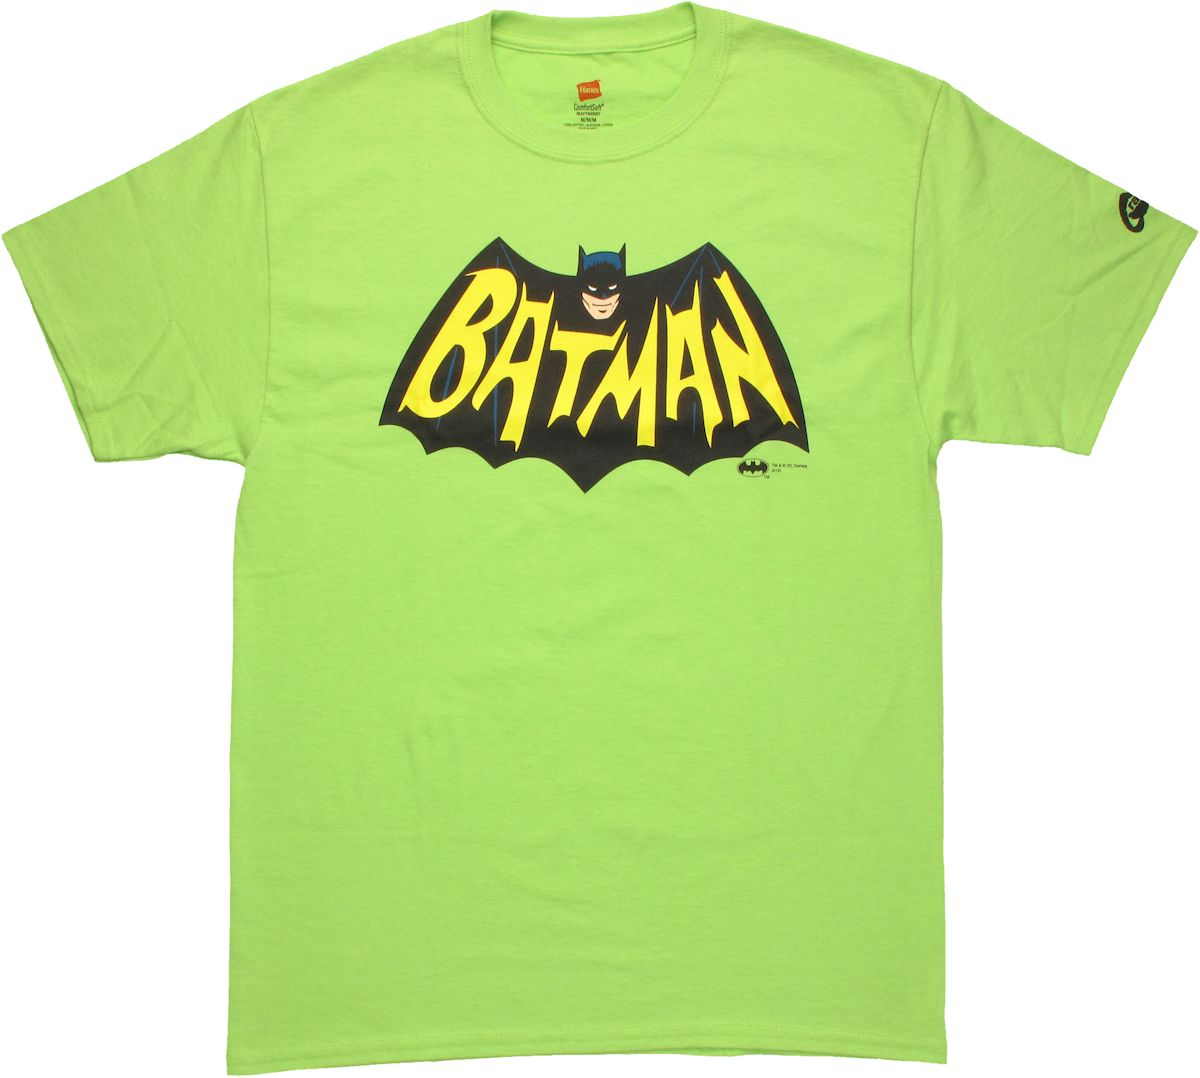 batman 39 66 logo t shirt